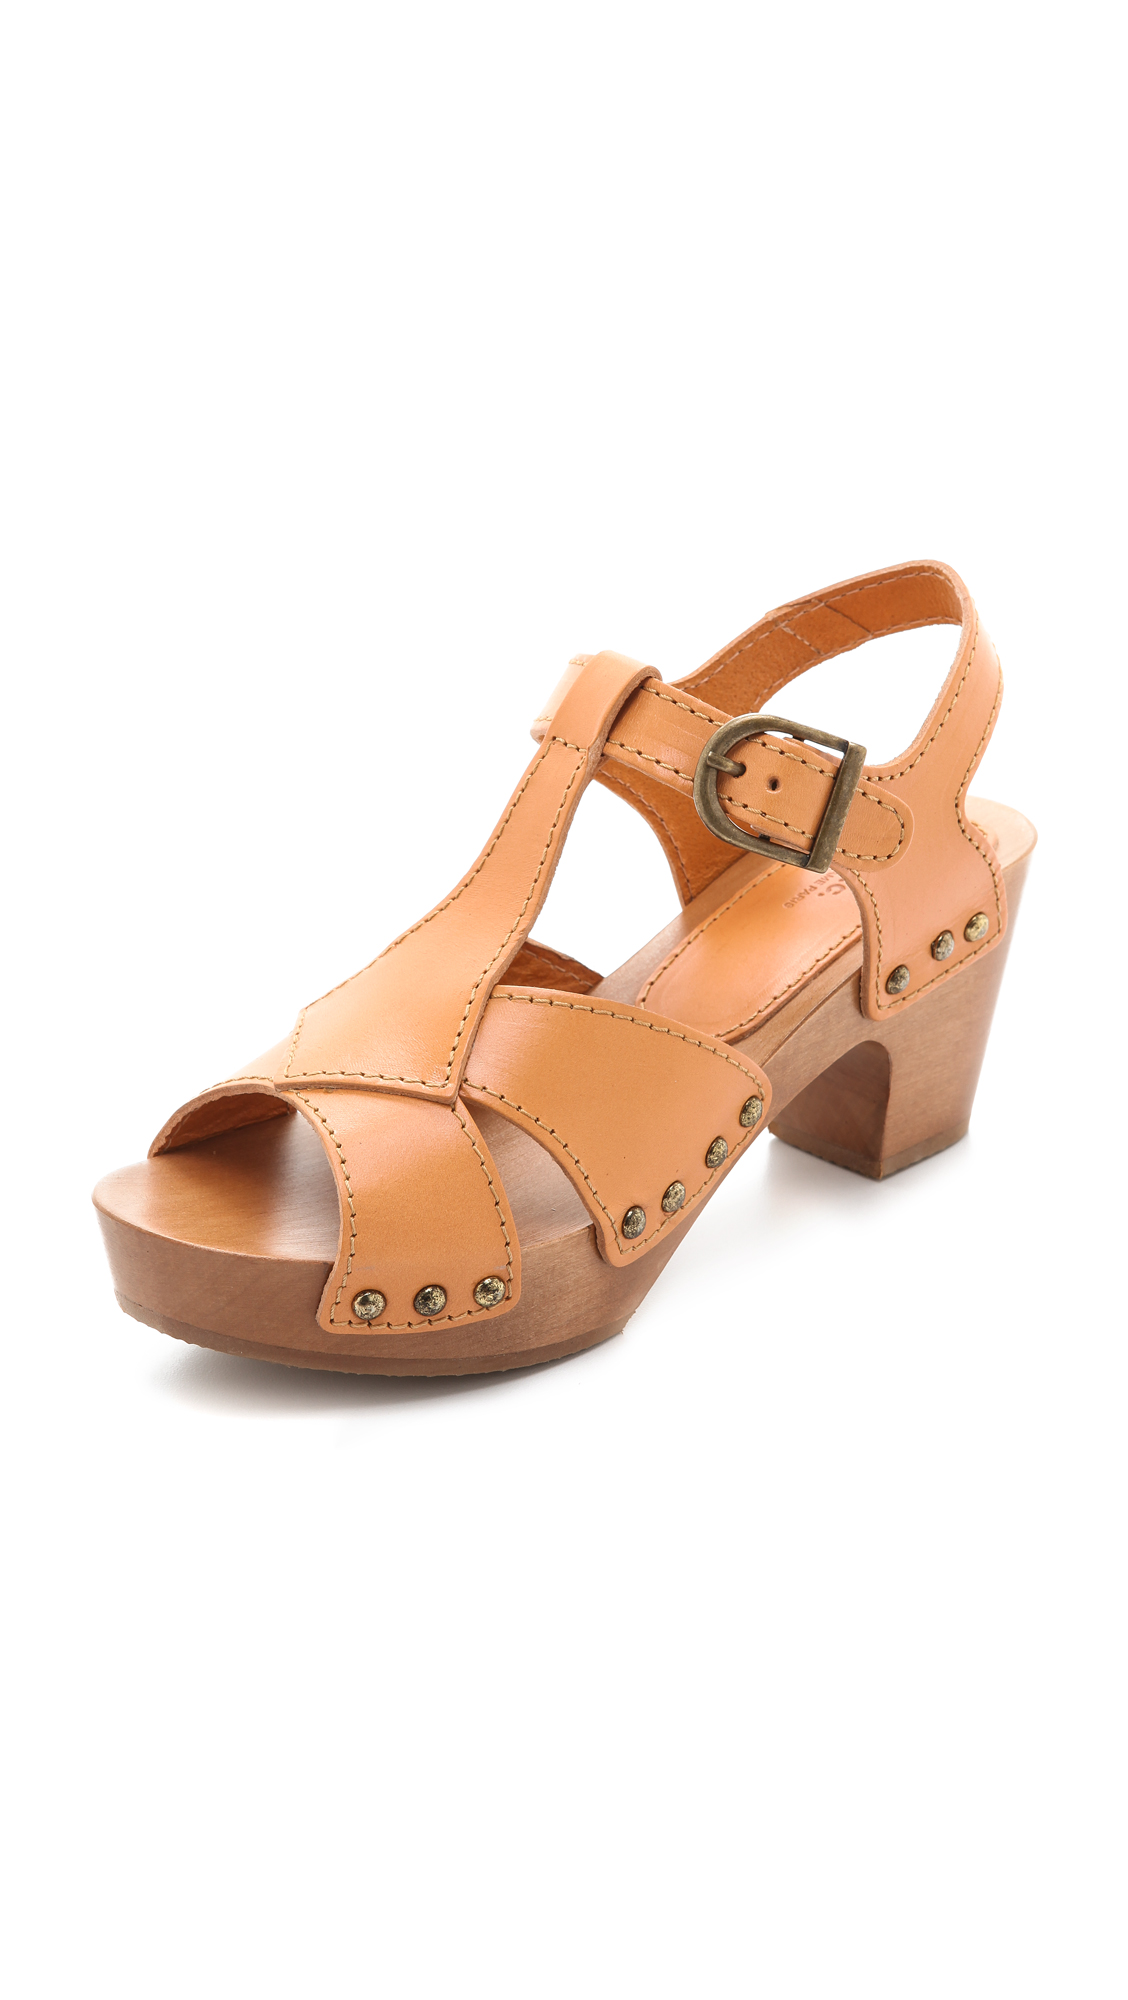 Brown Sling Shoes For Women